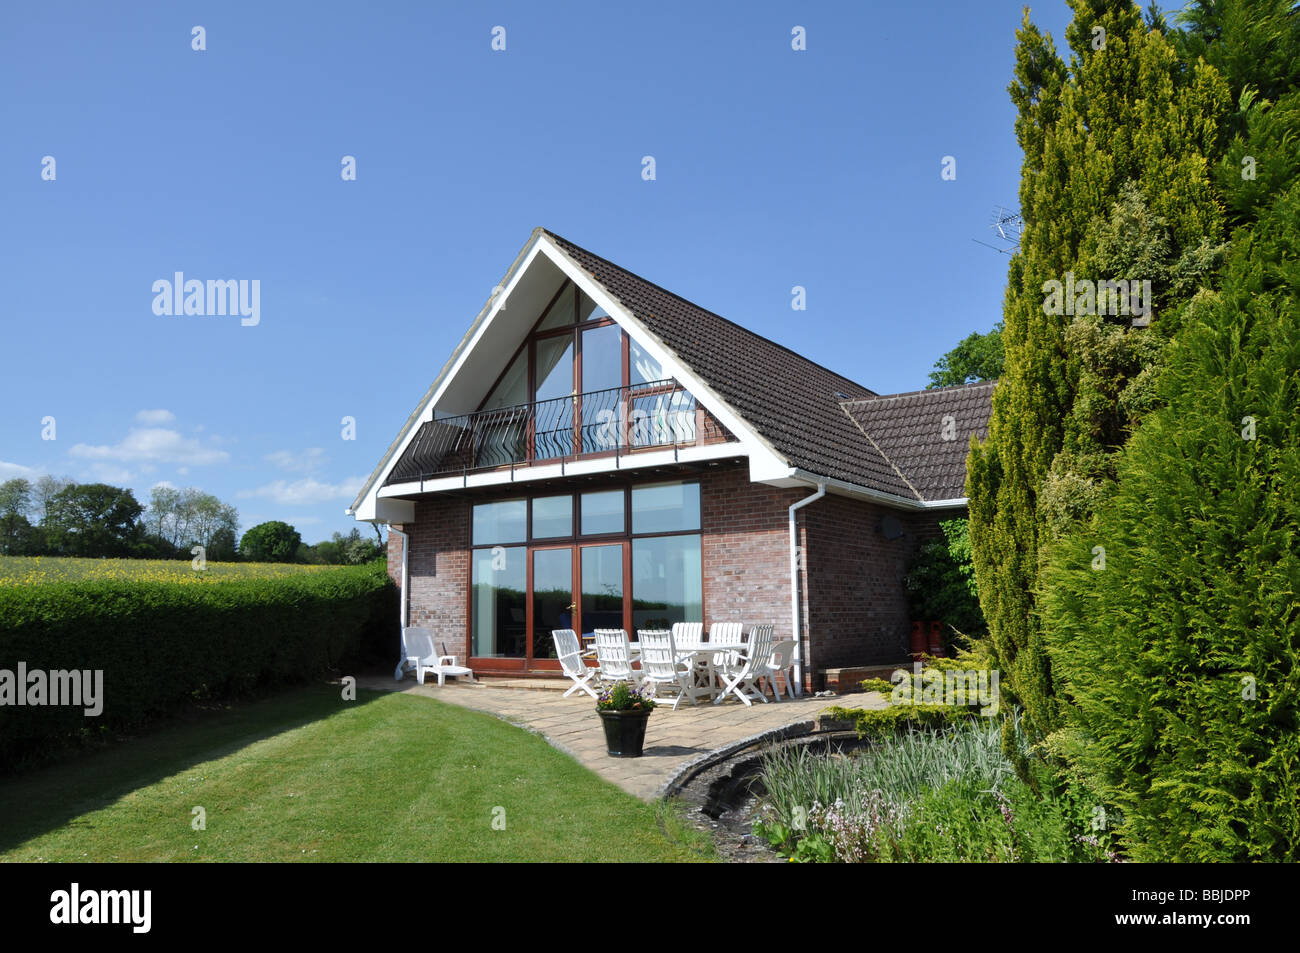 Modern house and garden - Modern Detached House And Garden In English Countryside